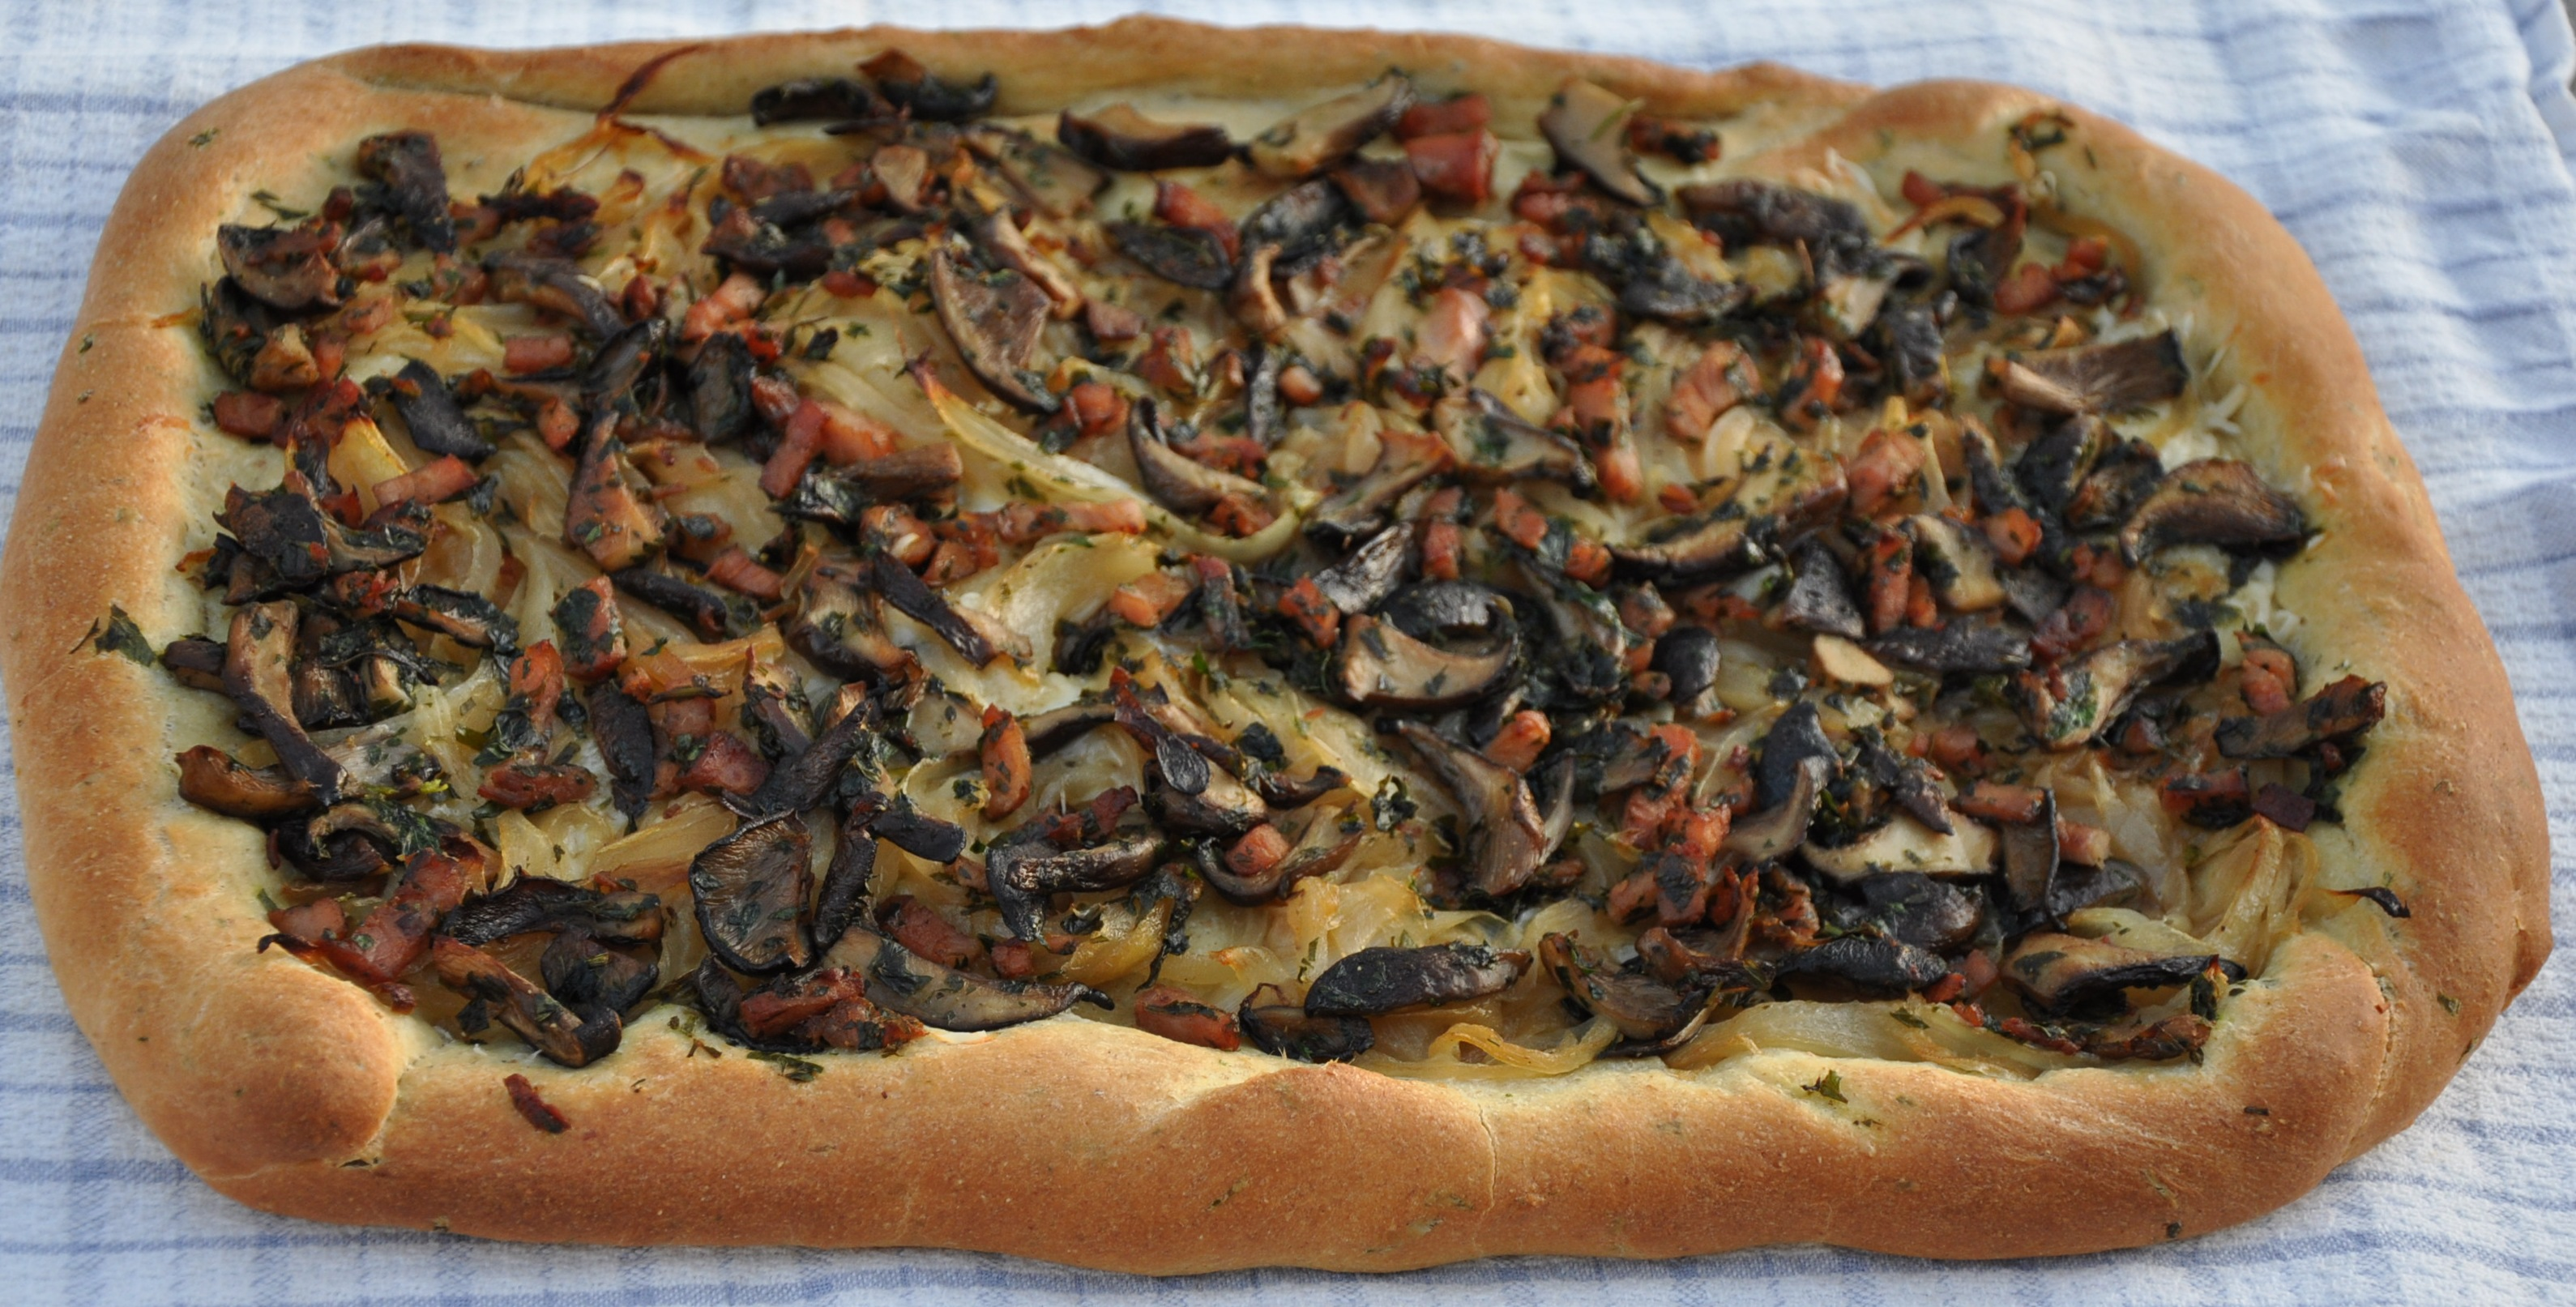 Pissaladire with Oyster Mushrooms and Black Forest Ham